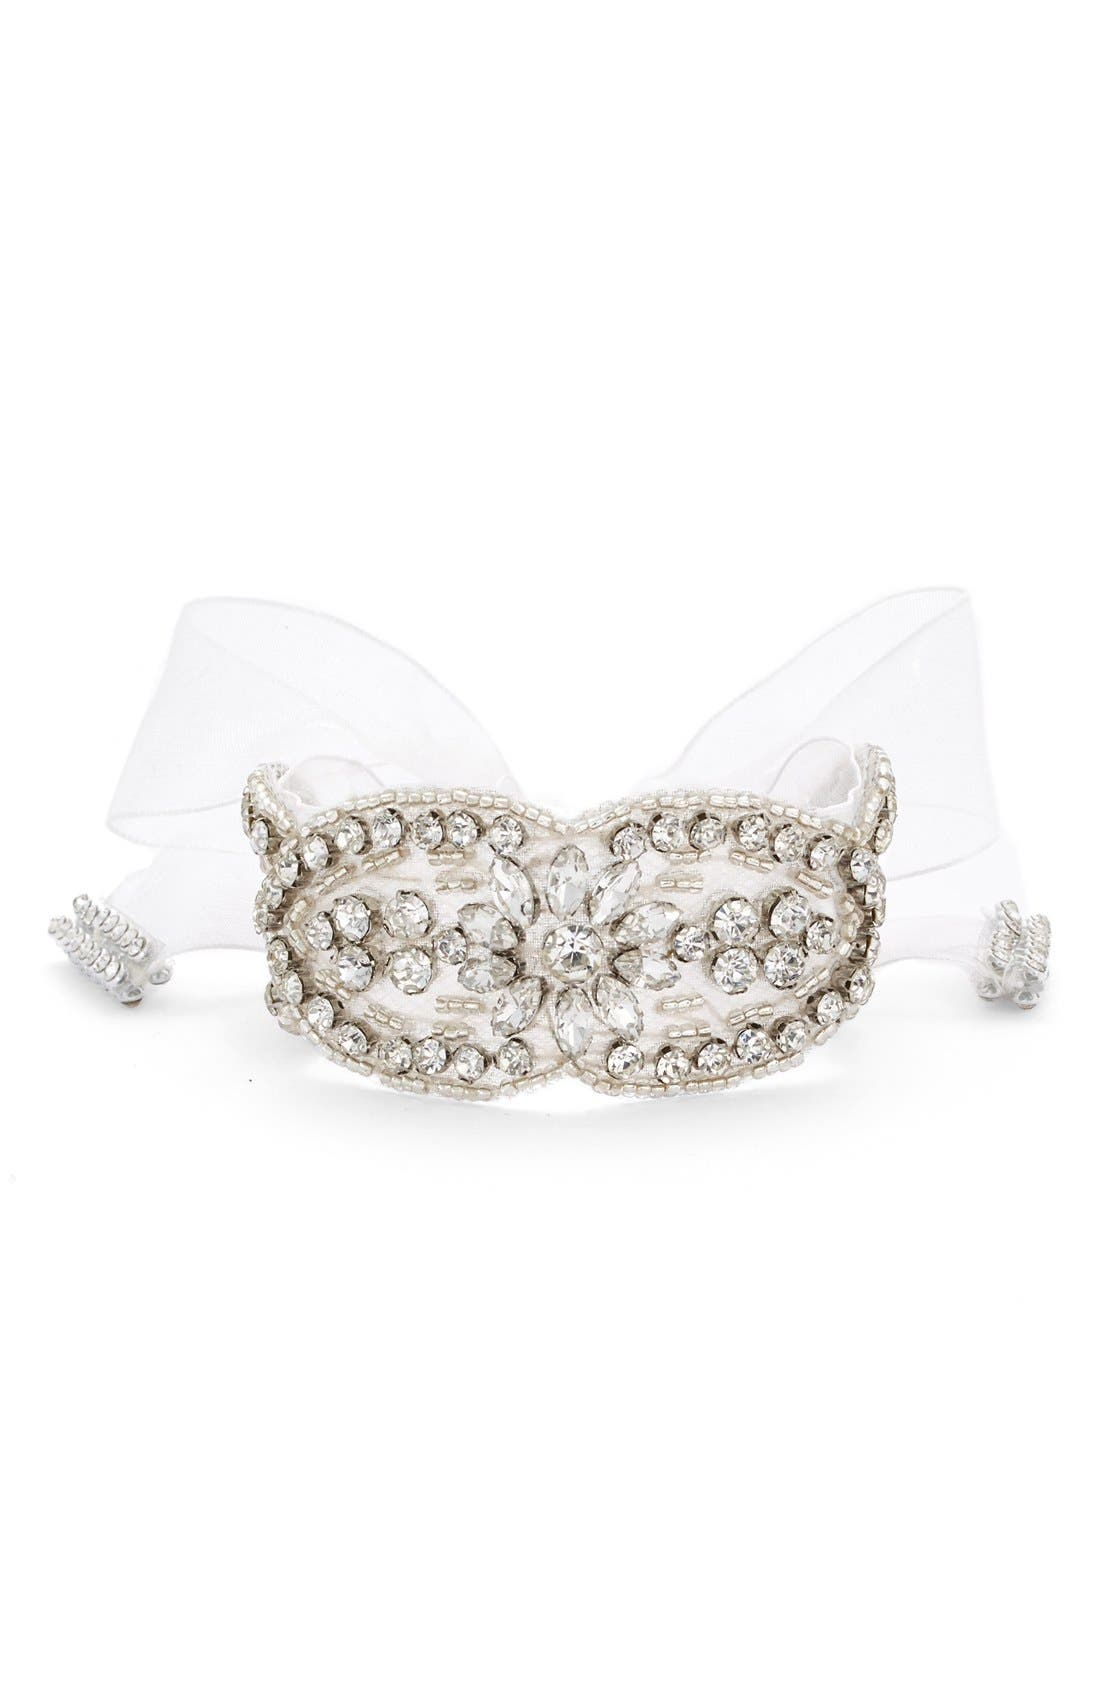 'Pretty Boho' Jewel Tie Bracelet,                         Main,                         color, Ivory